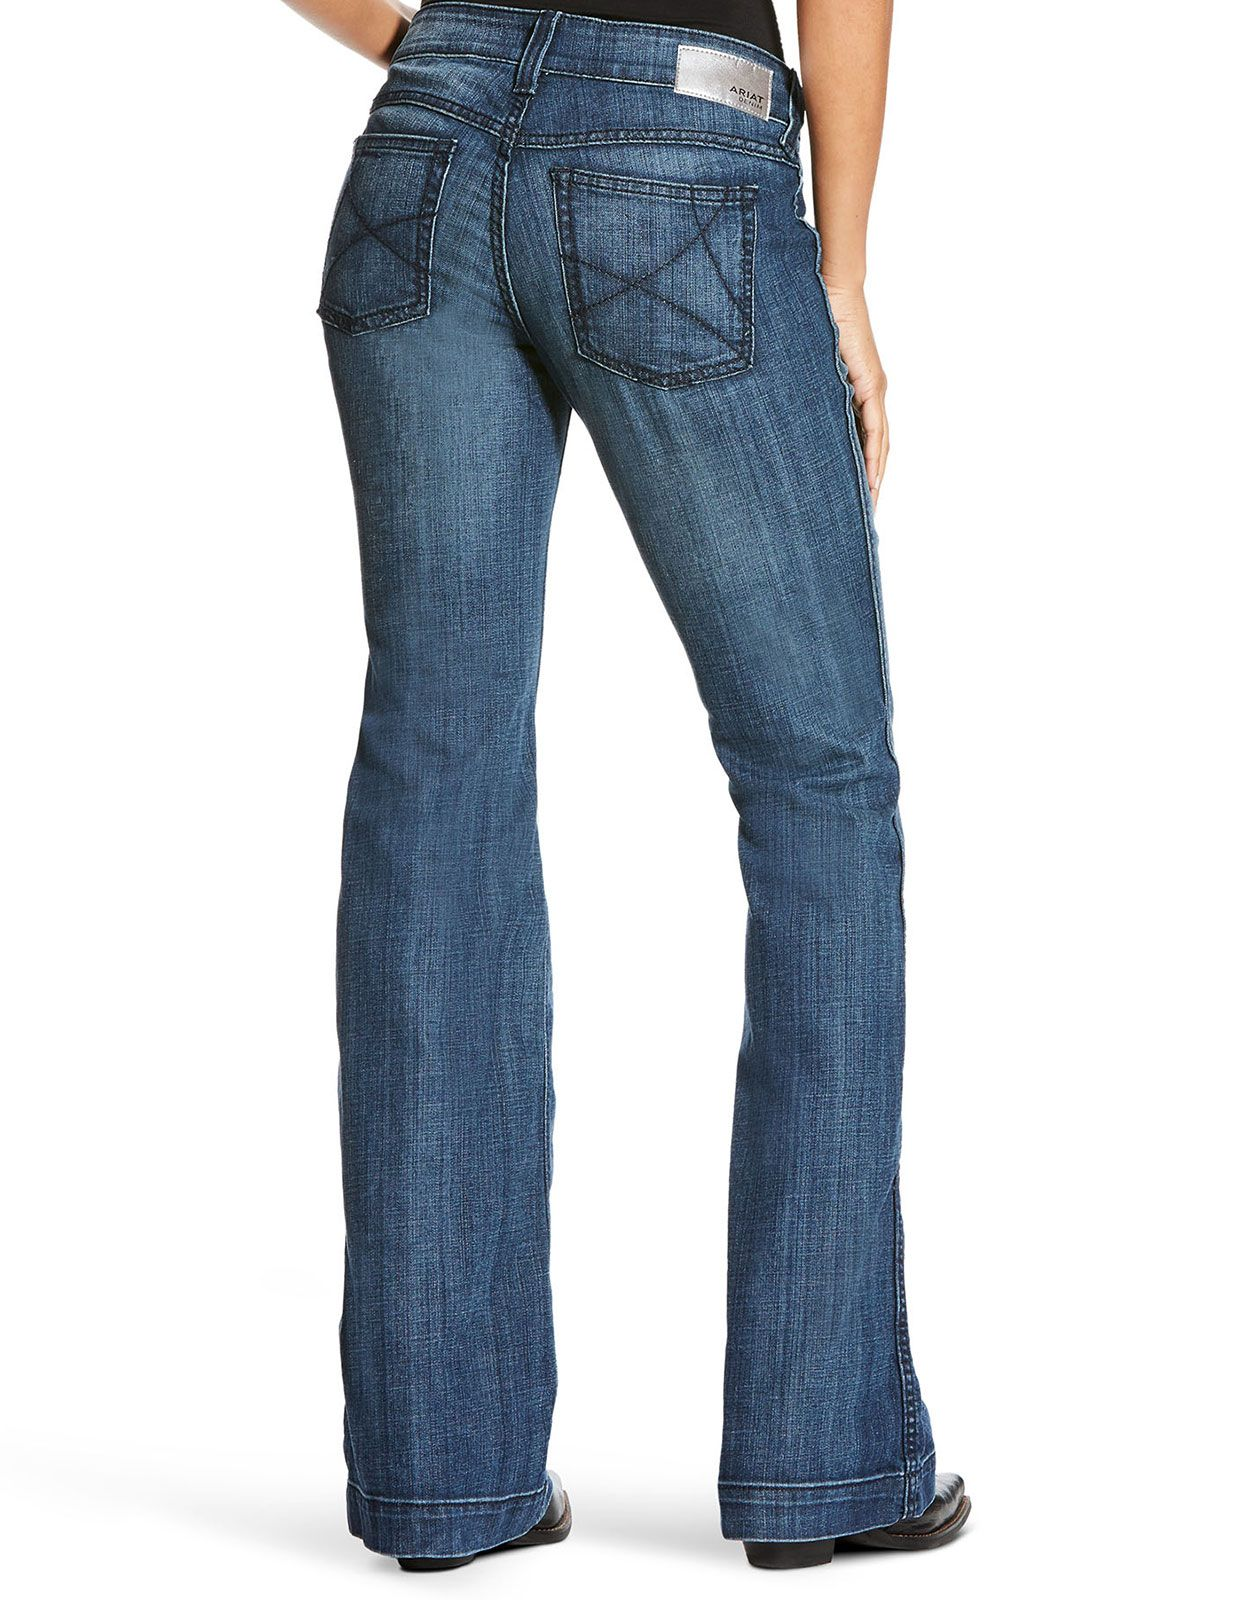 Ariat Women's R.E.A.L. Trouser Mid Rise Relaxed Fit Flare Leg Jeans - Bluebell